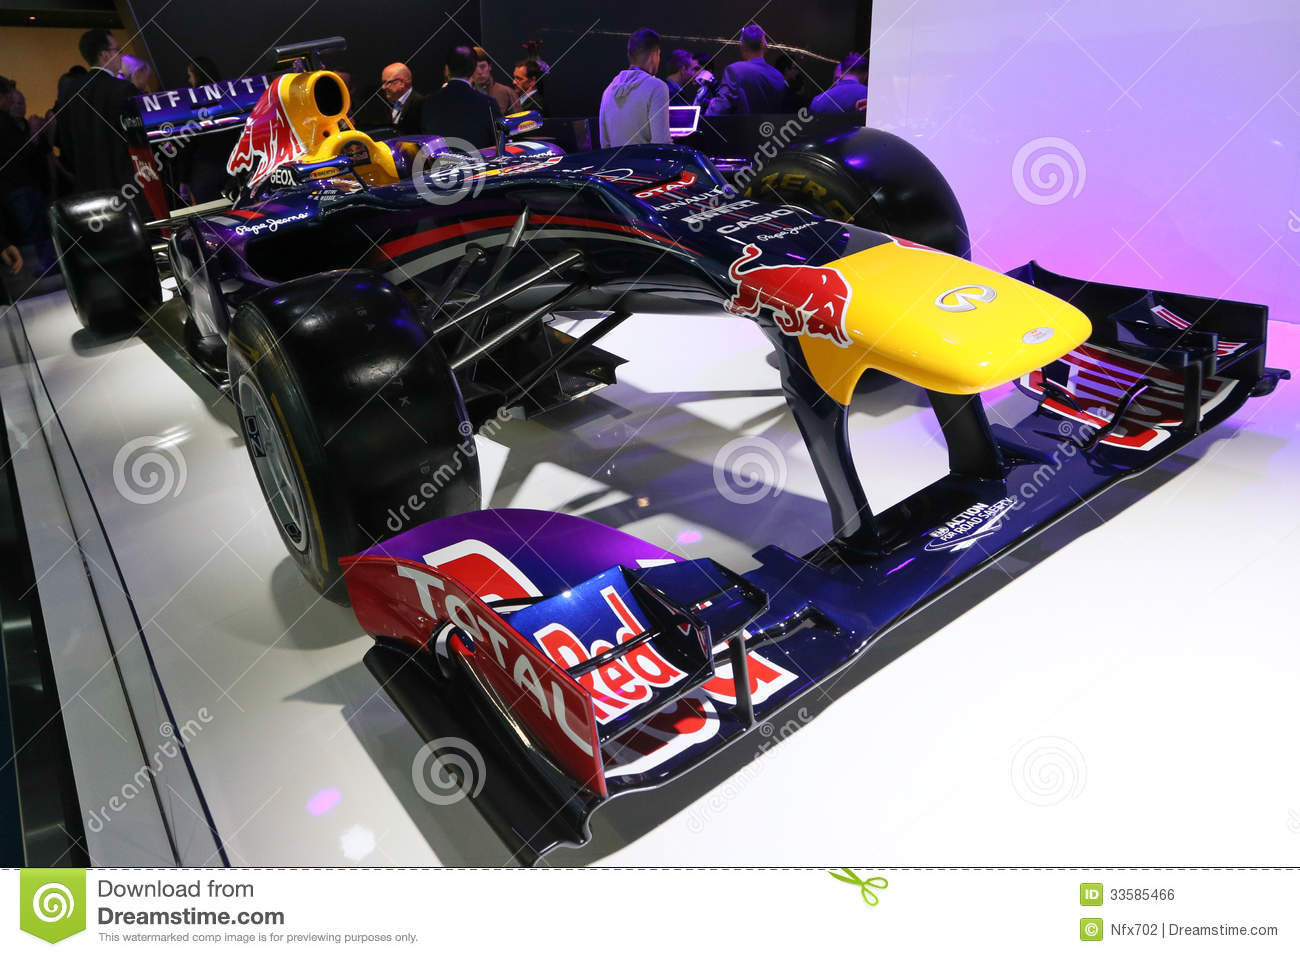 voiture infiniti red bull de la formule 1 emballant rb9 photo ditorial image 33585466. Black Bedroom Furniture Sets. Home Design Ideas